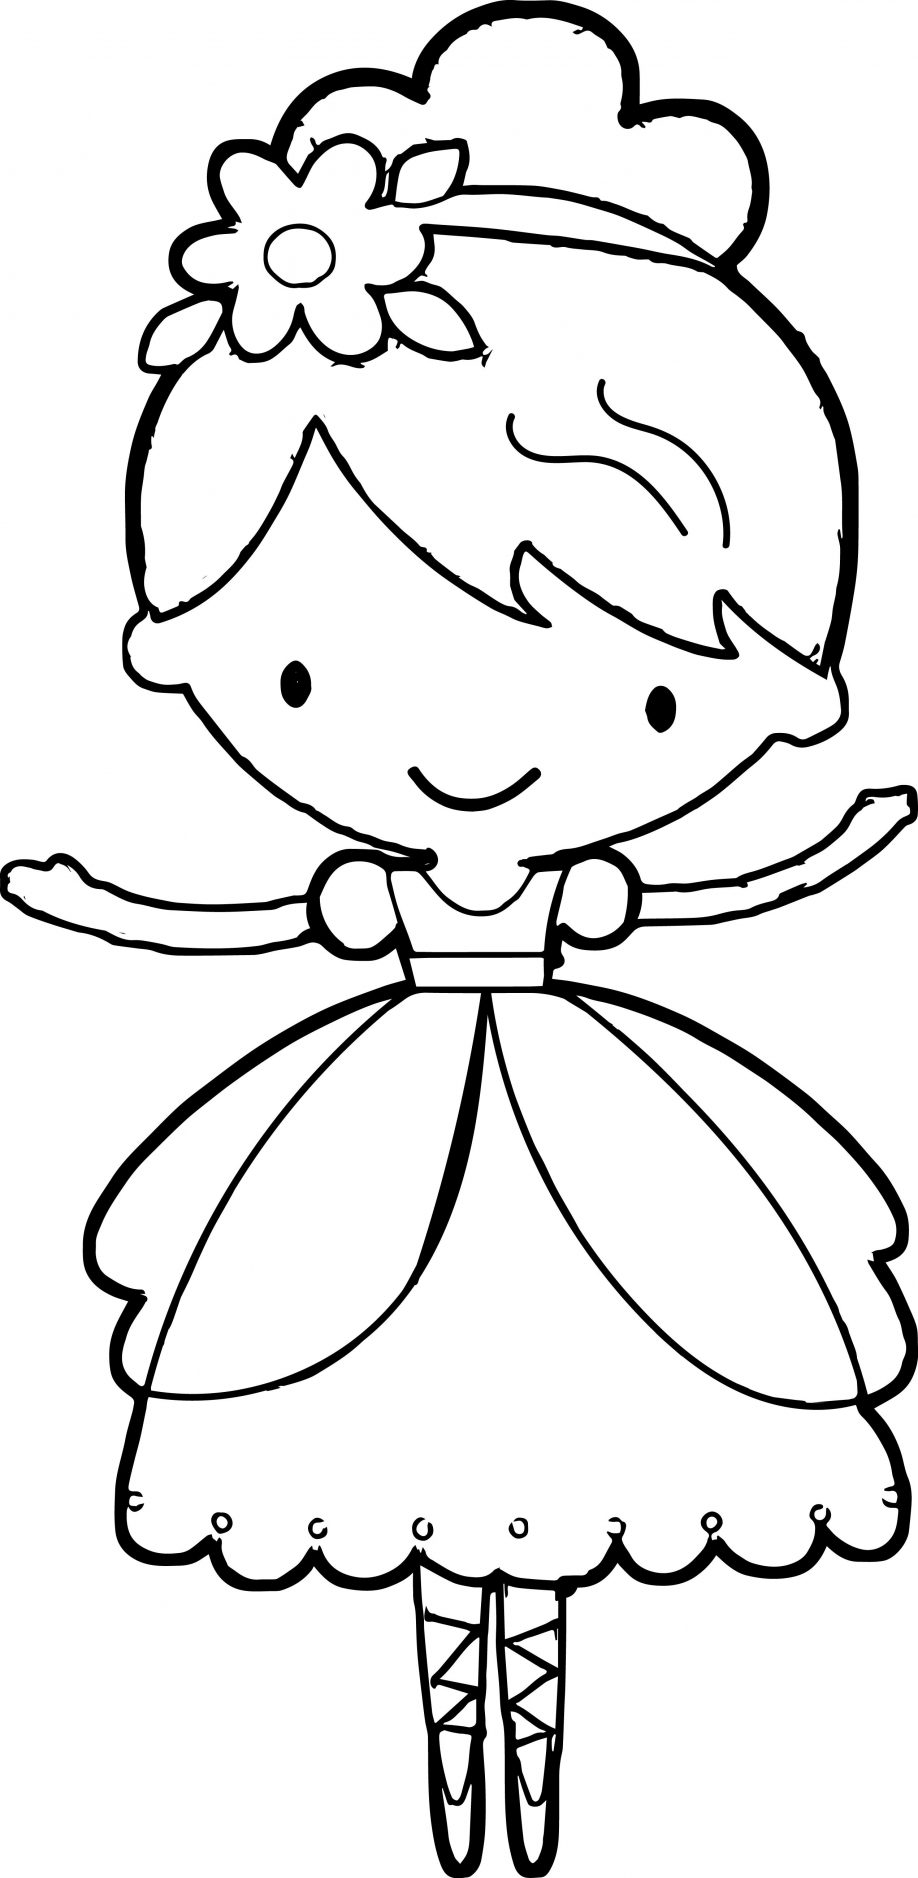 918x1878 Obsession Ballerina Colouring Pictures Exclusive Coloring Unique